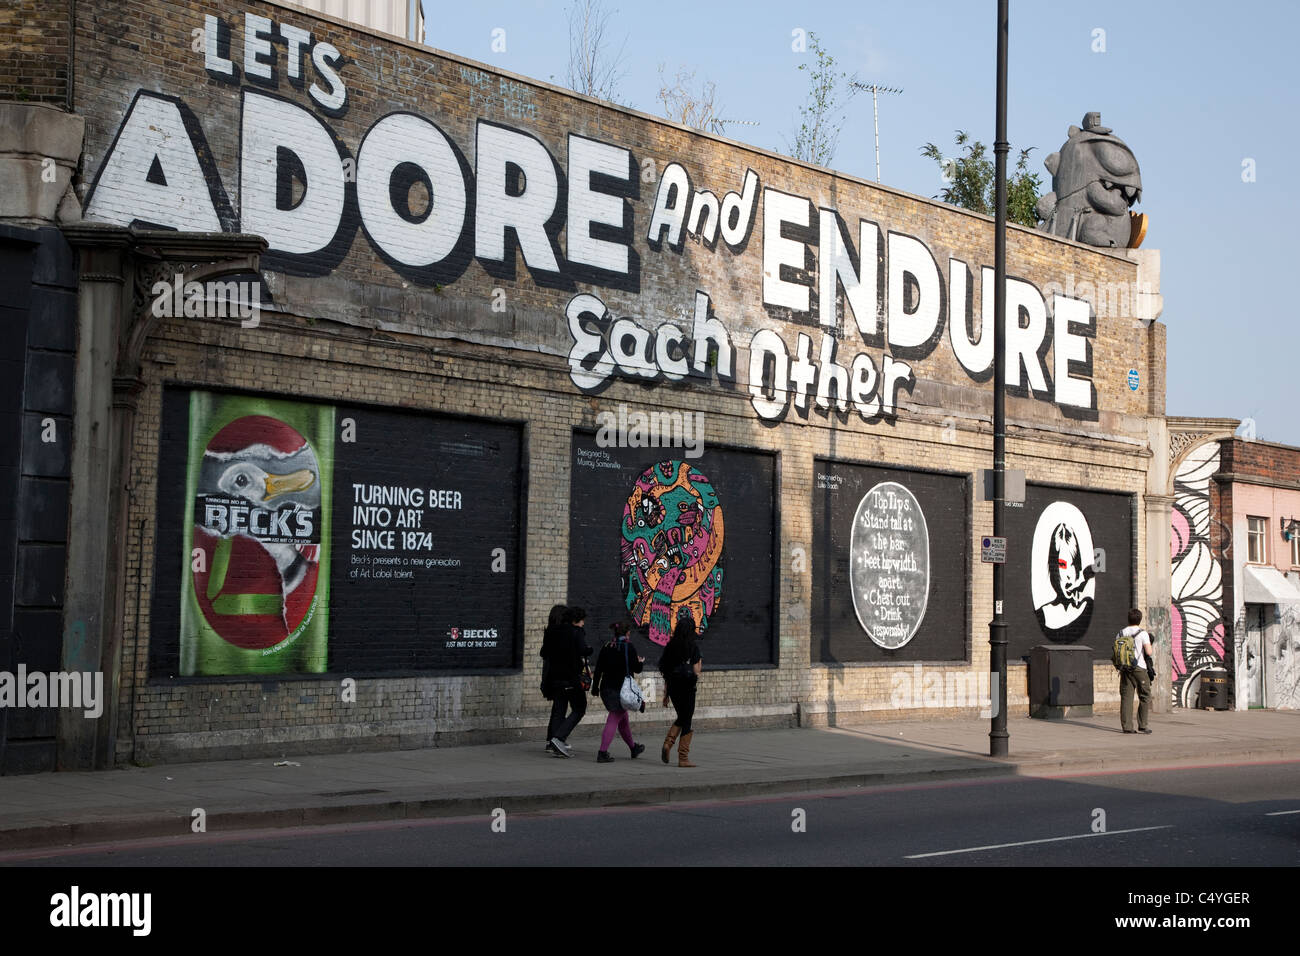 Lets Adore and Endure Each Other - Art Mural by Stefan Powers in Shoreditch London - Stock Image